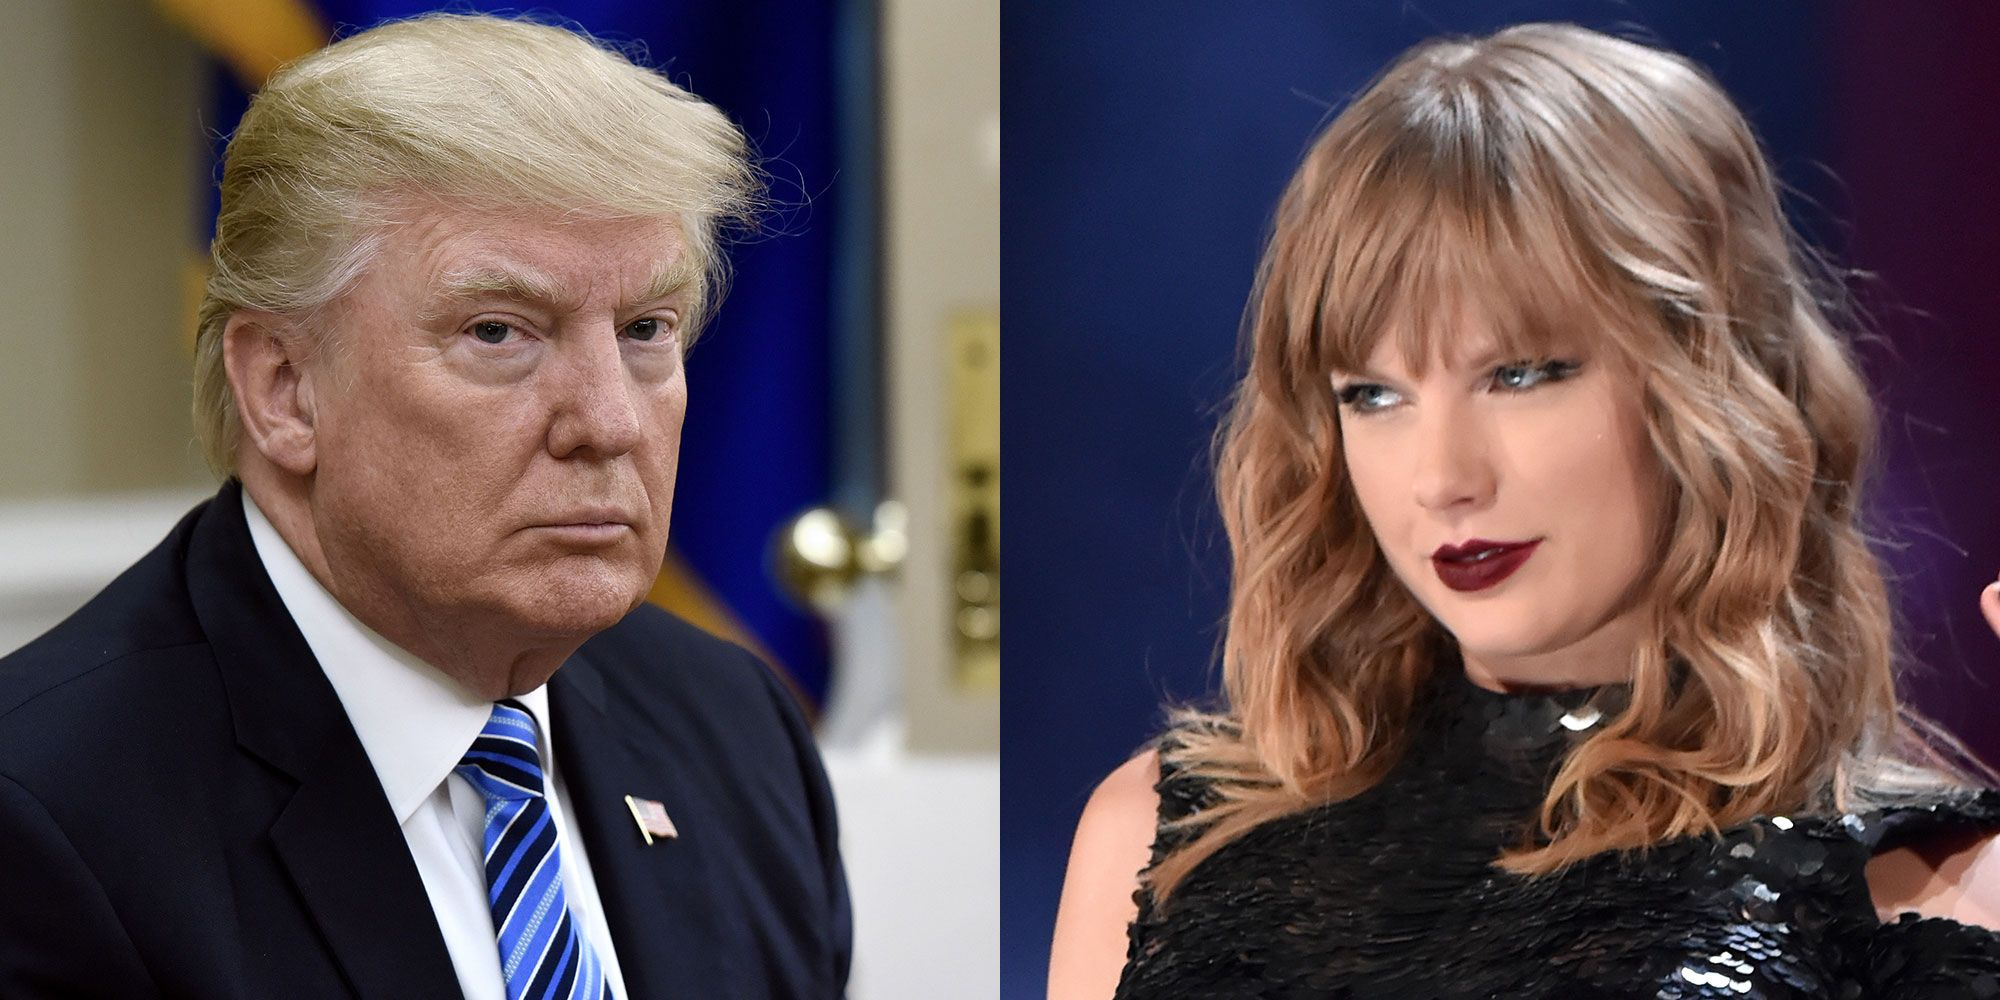 Donald Trump and Taylor Swift